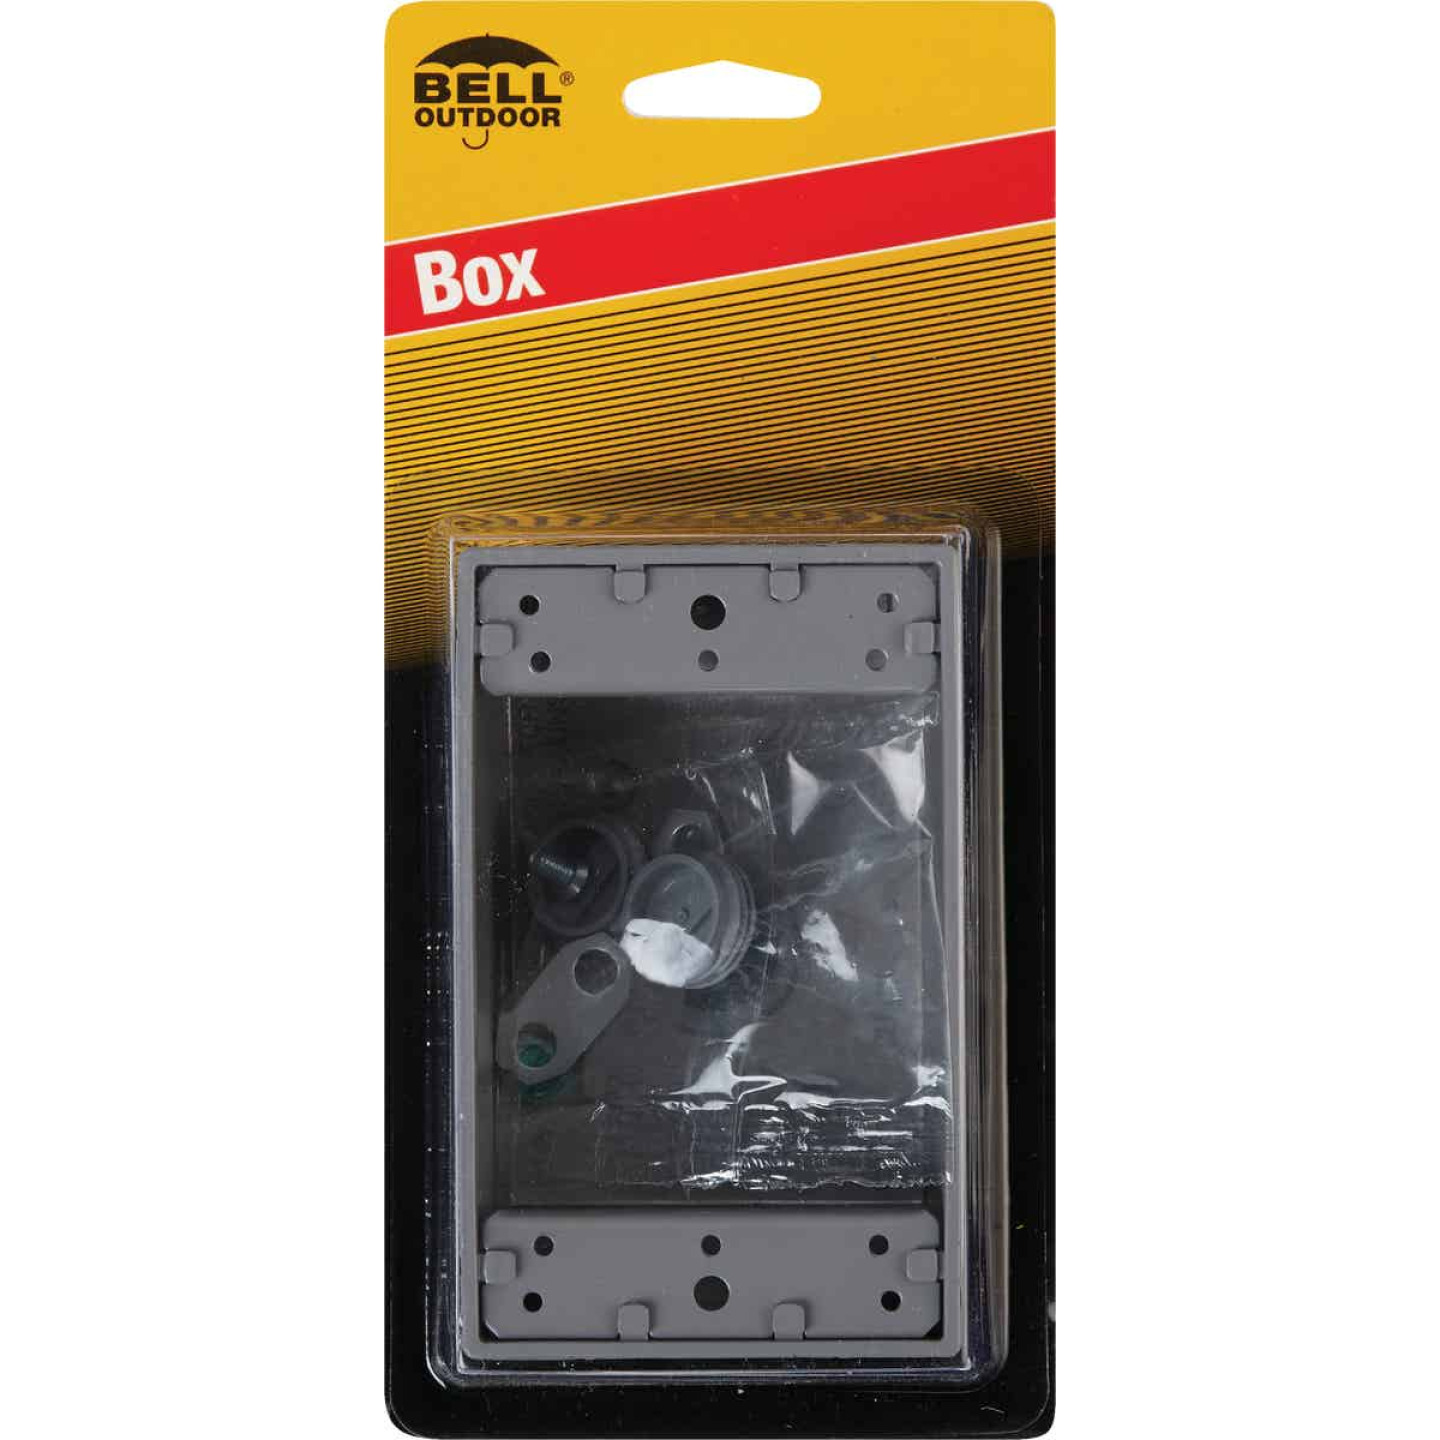 Bell Single Gang 1/2 In. 4-Outlet Gray Weatherproof Die-Cast Aluminum Outdoor Outlet Box Image 2